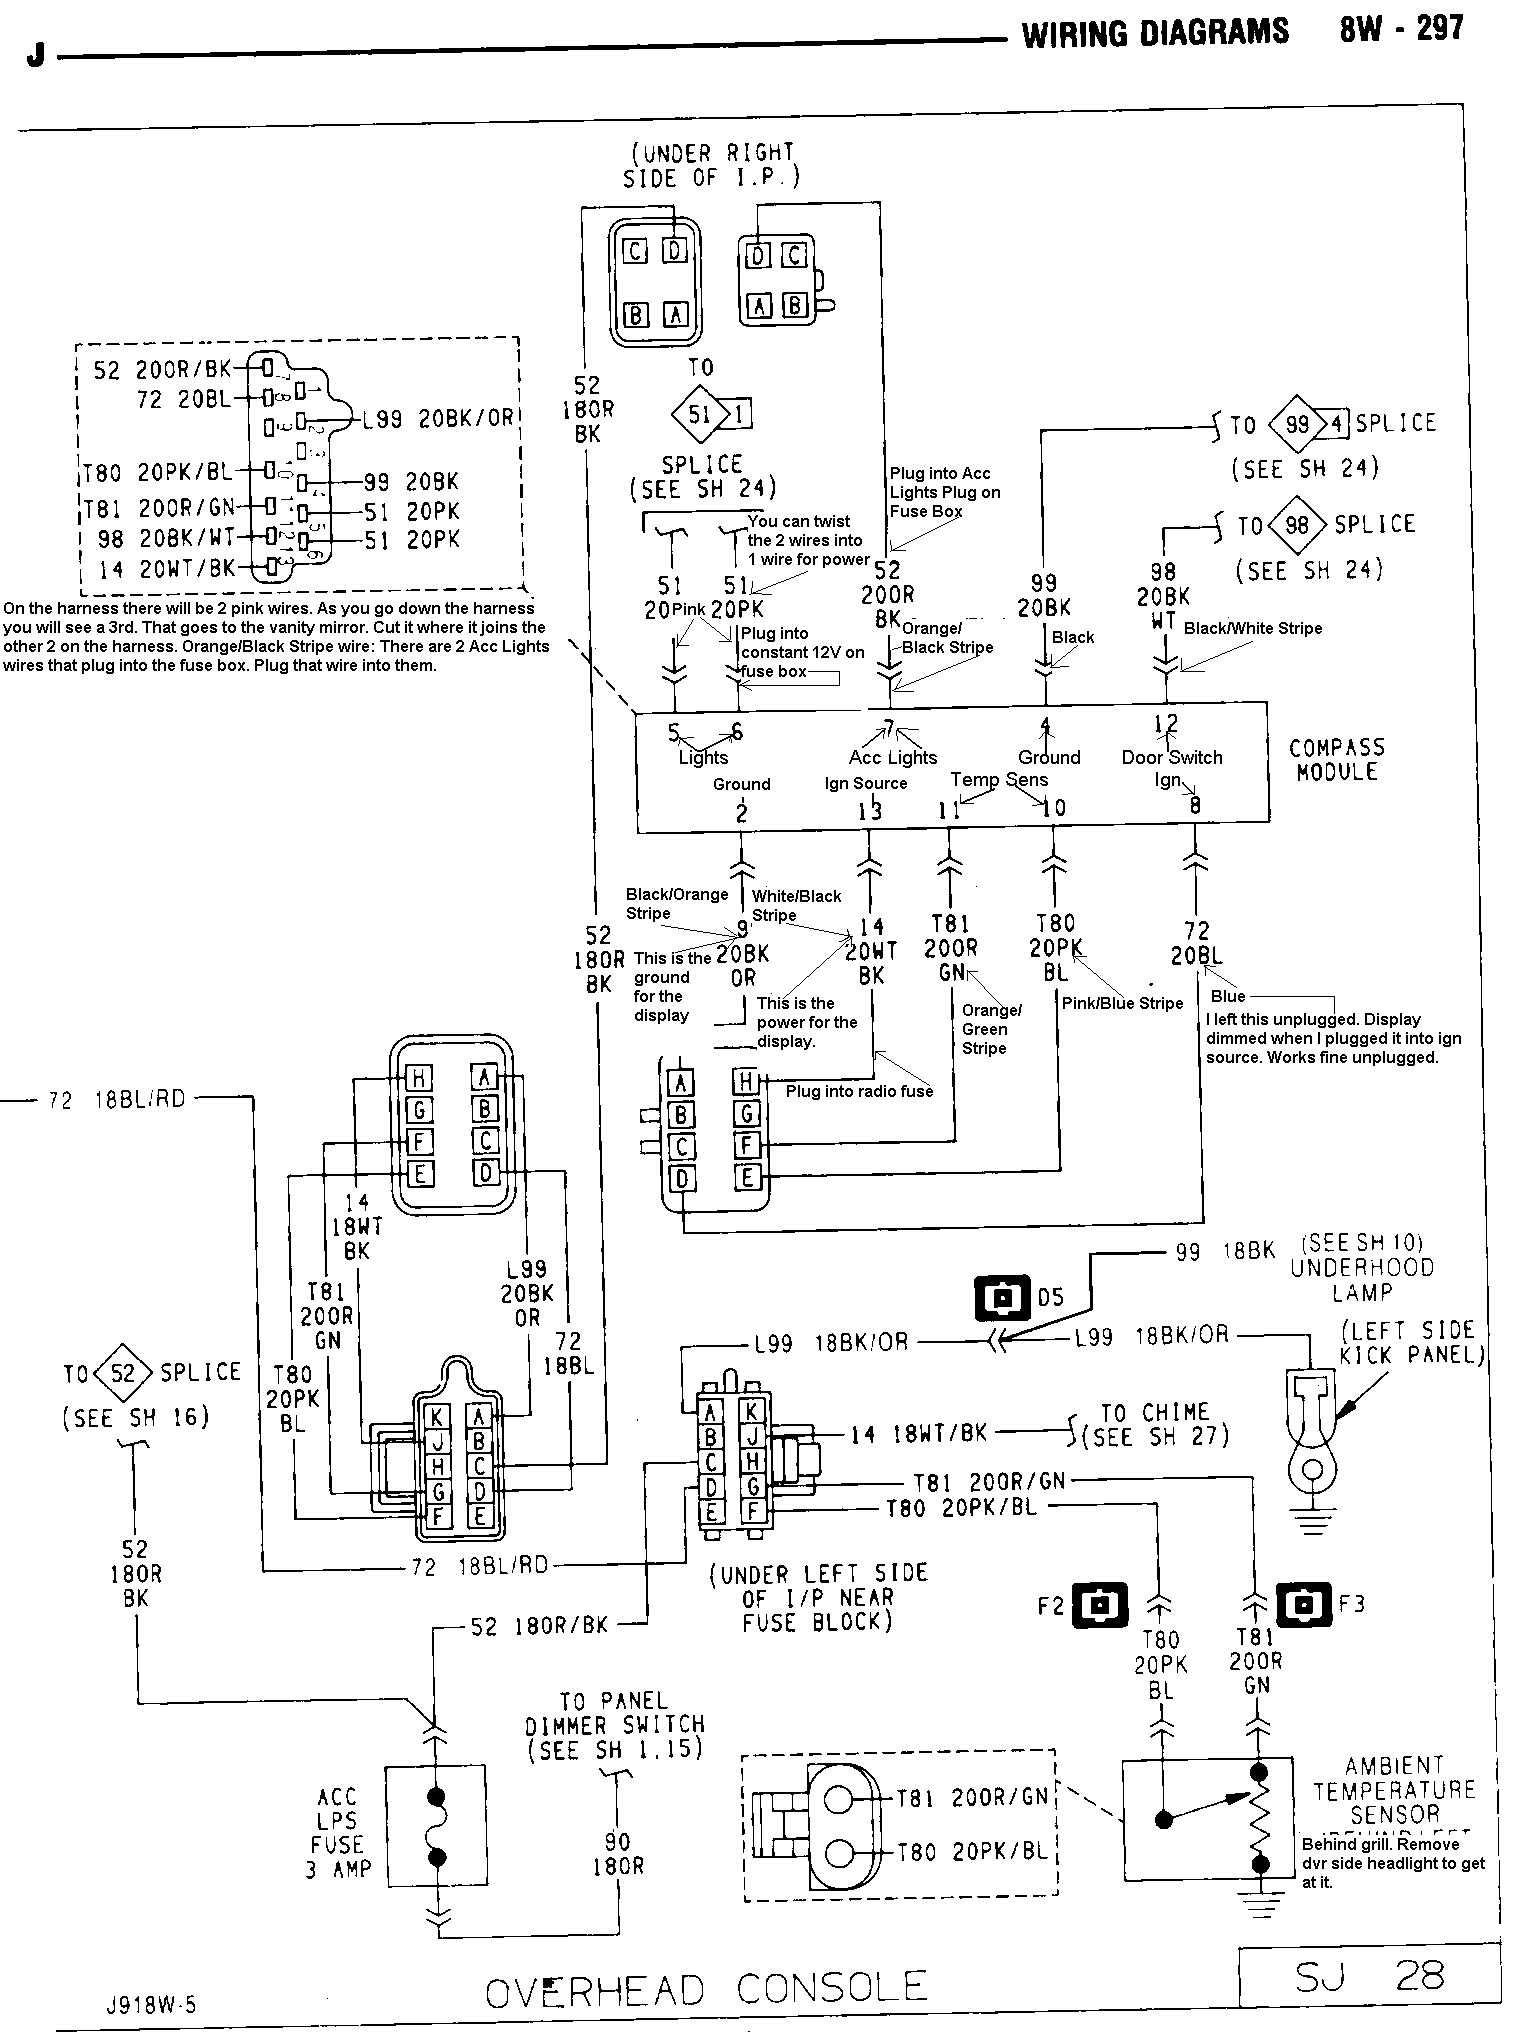 91consolediagrammodified tom 'oljeep' collins fsj wiring page jeep cherokee overhead console wiring diagram at bakdesigns.co